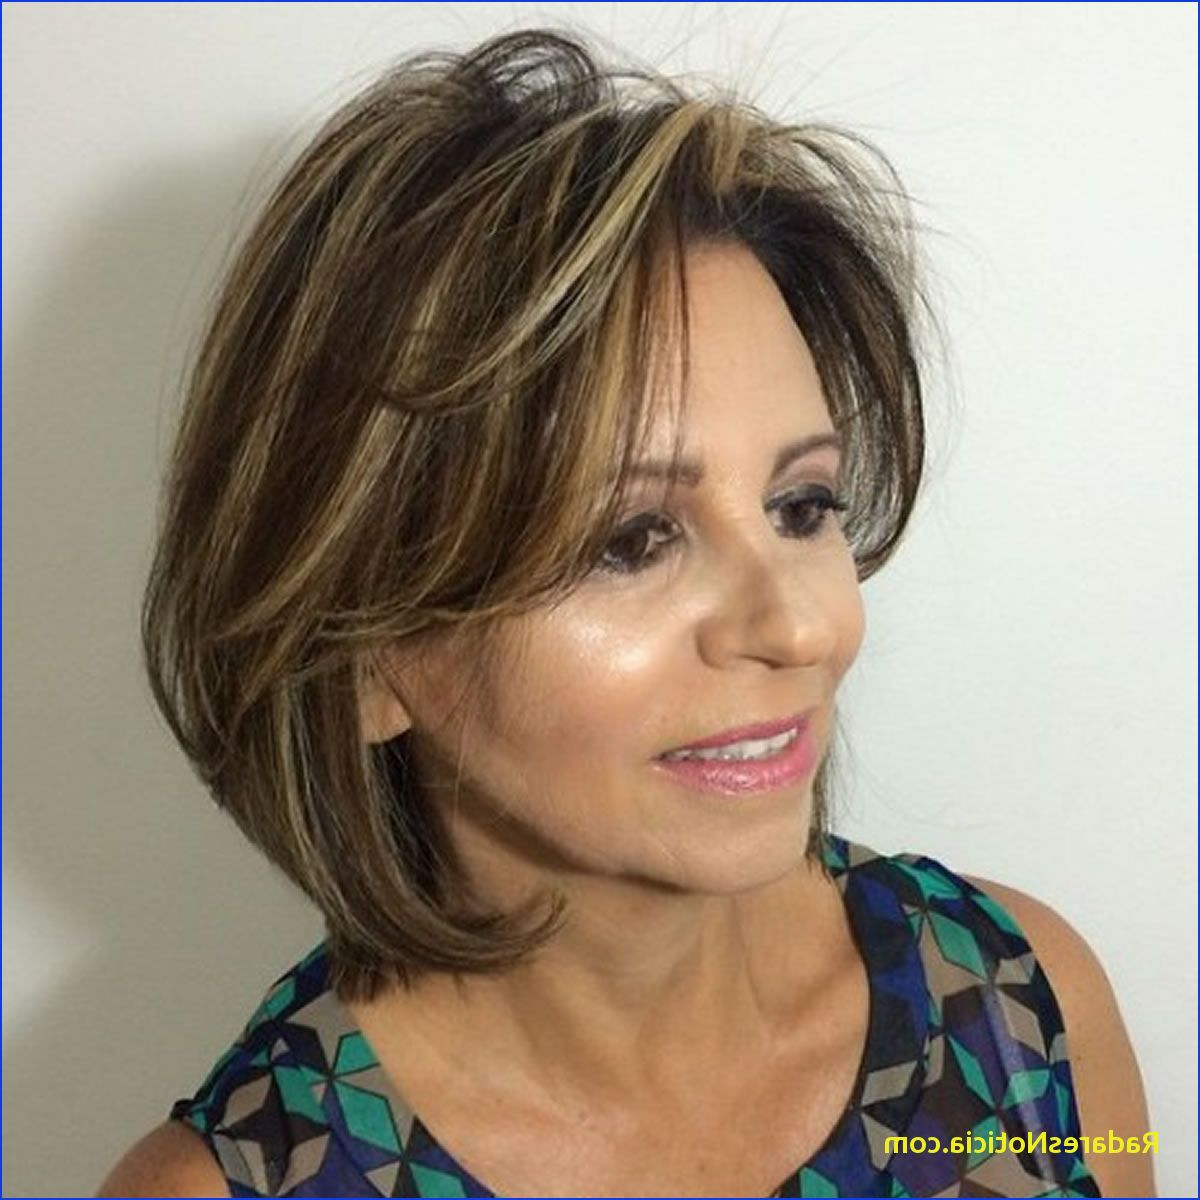 Hairstyles For Medium Hair 2018 2018 Haircuts For Older Women Over With Regard To Popular Medium Hairstyles For Mature Women (View 10 of 20)